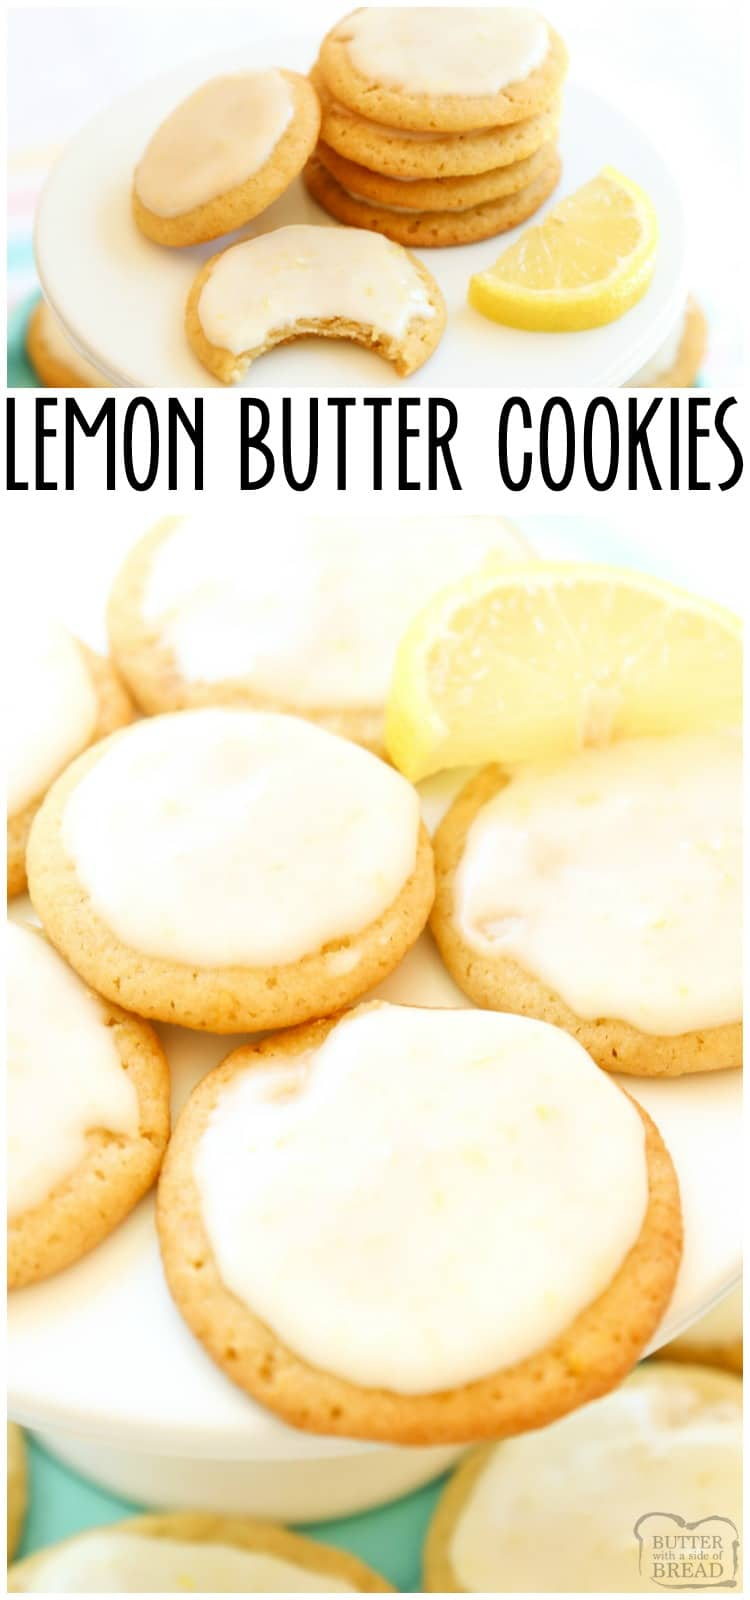 Lemon Butter Cookies are a delectable take on the classic butter cookies recipe. Thislemon cookie recipemakes the best of both sweet and sour flavors!